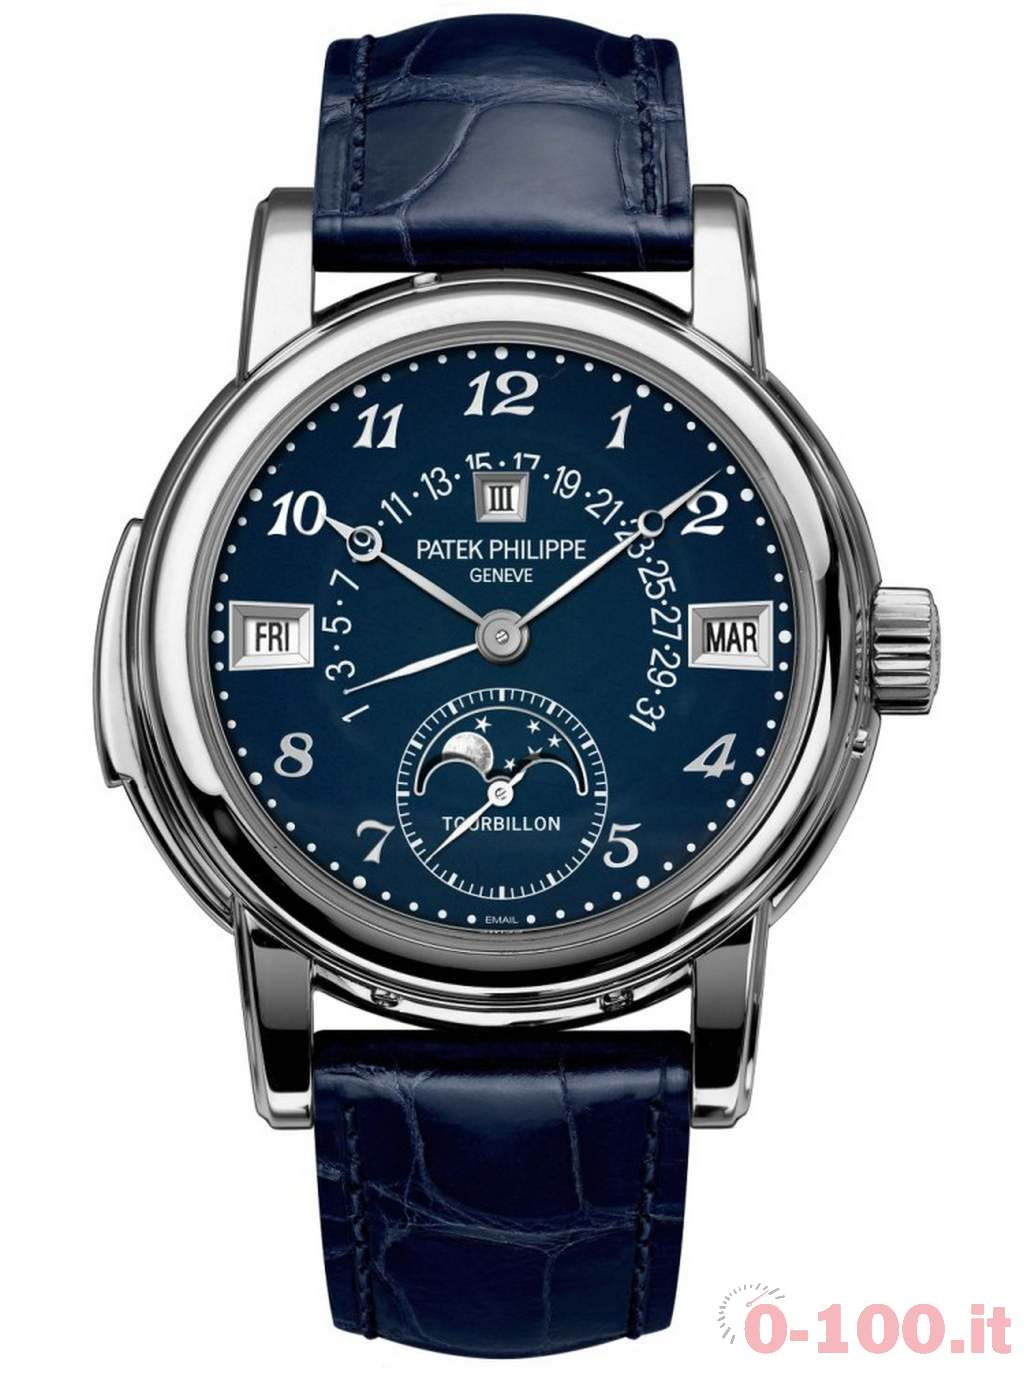 only-watch-2015-il-patek-philippe-5016a-prezzo-price_0-1004